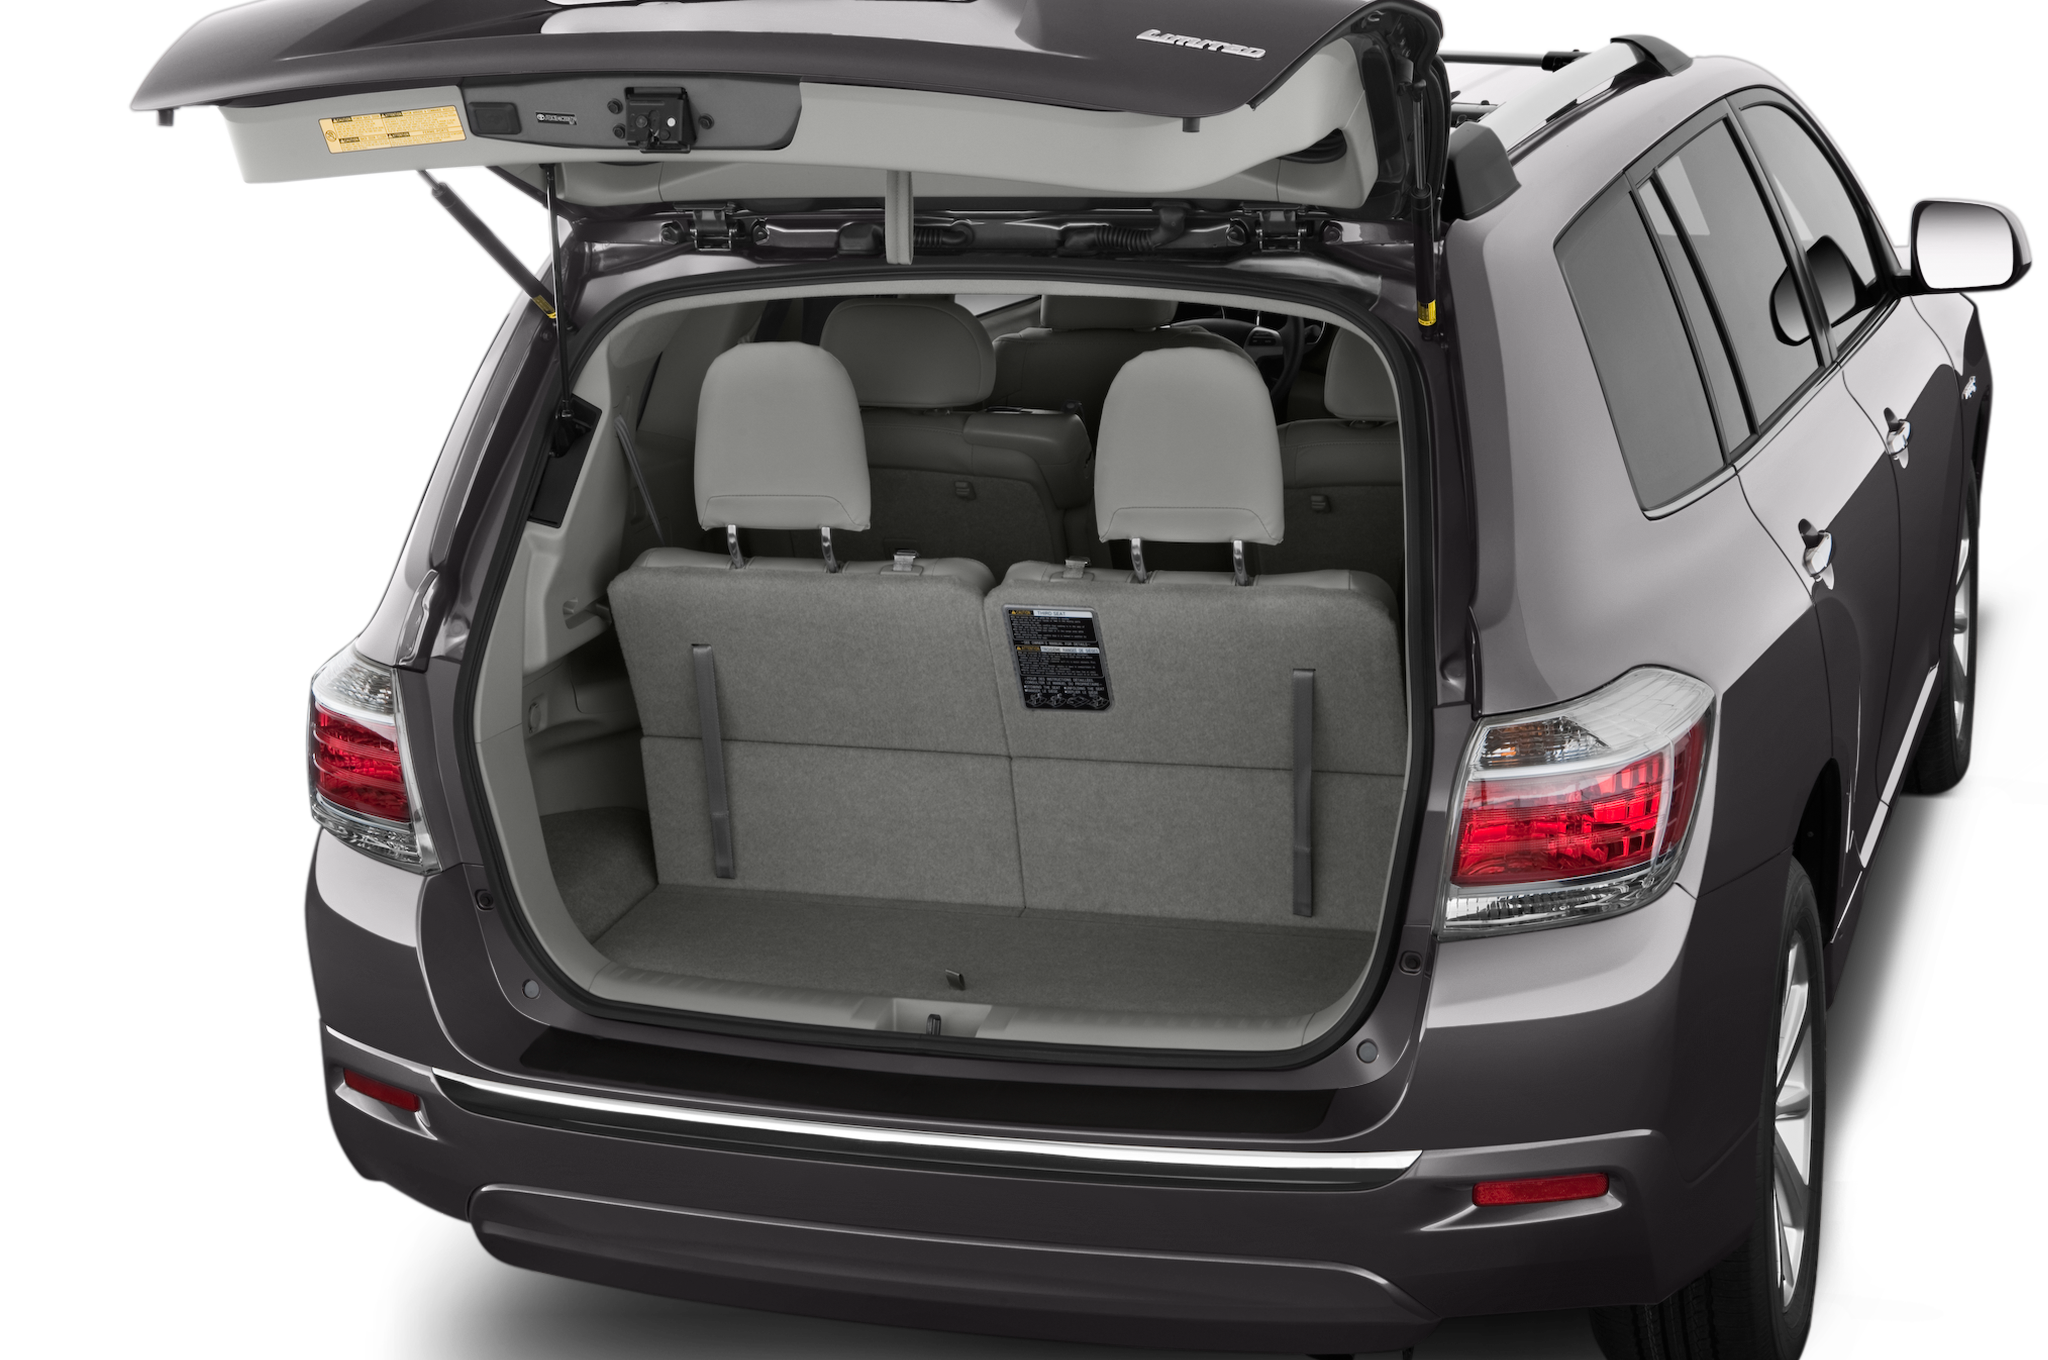 new york 2013 2014 toyota highlander will be all new. Black Bedroom Furniture Sets. Home Design Ideas